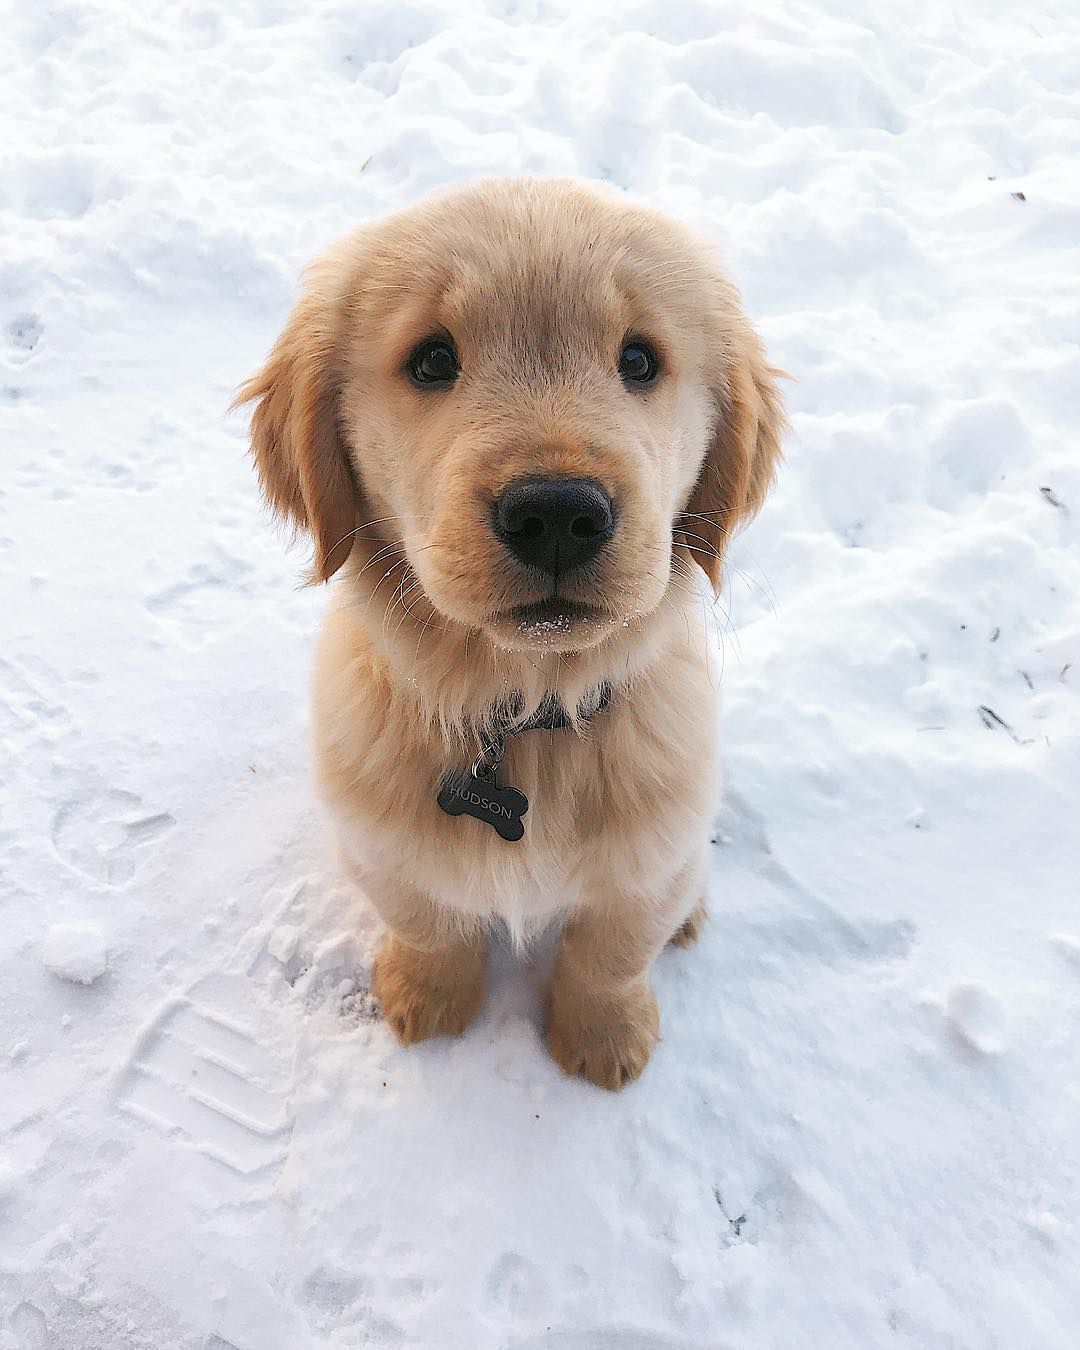 10 Cute Pictures of Golden Retrievers